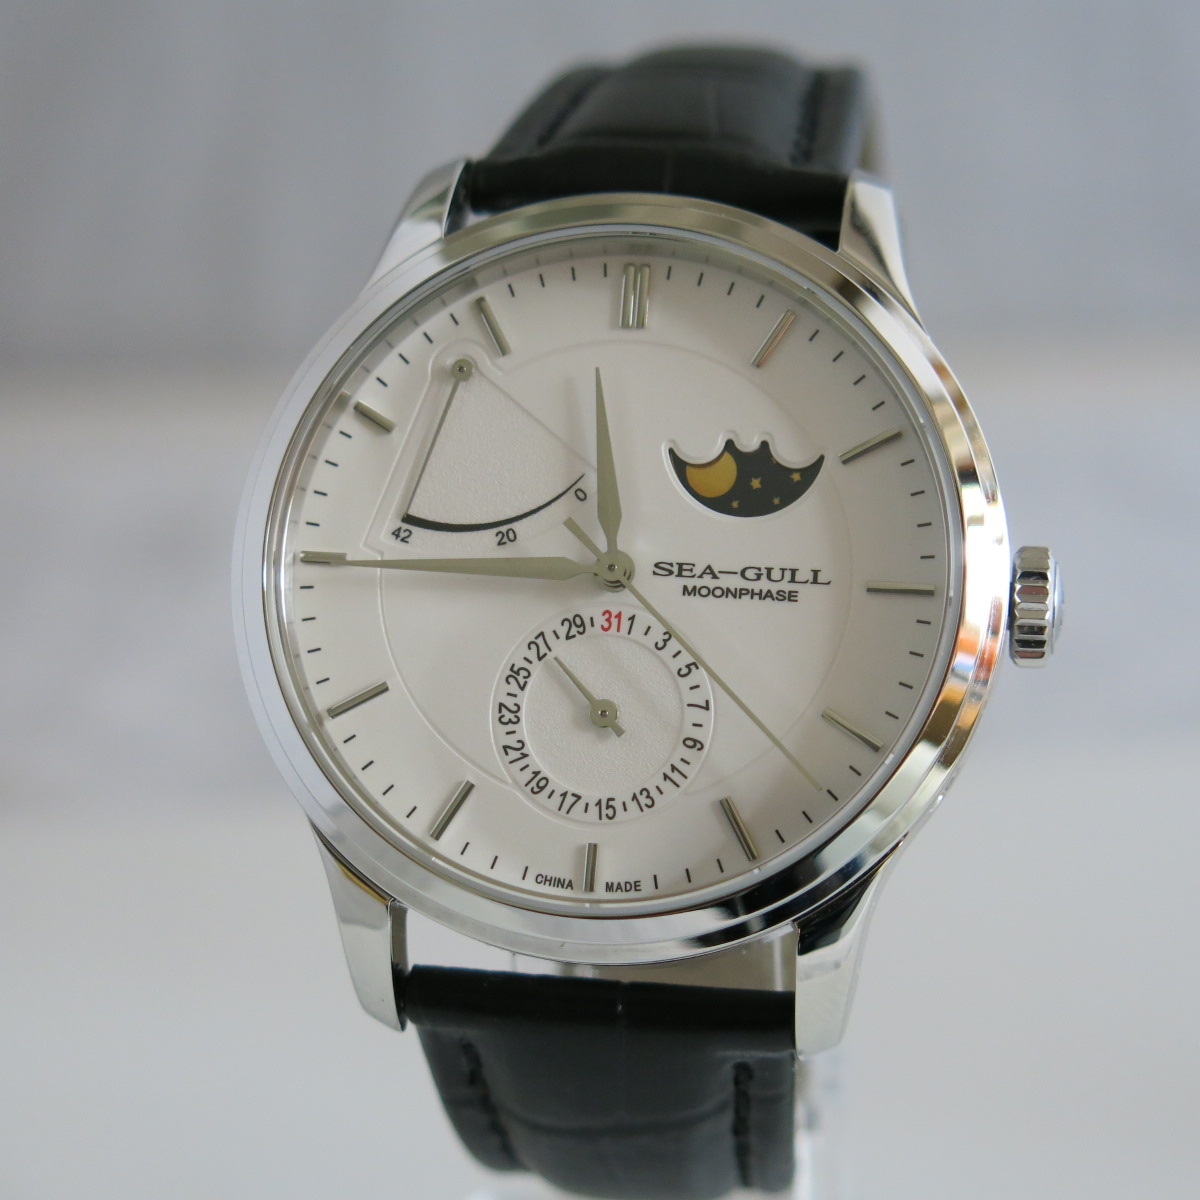 Sea-Gull 819.12.3002 moon phase automatic wristwatch with date and power reserve ST2153